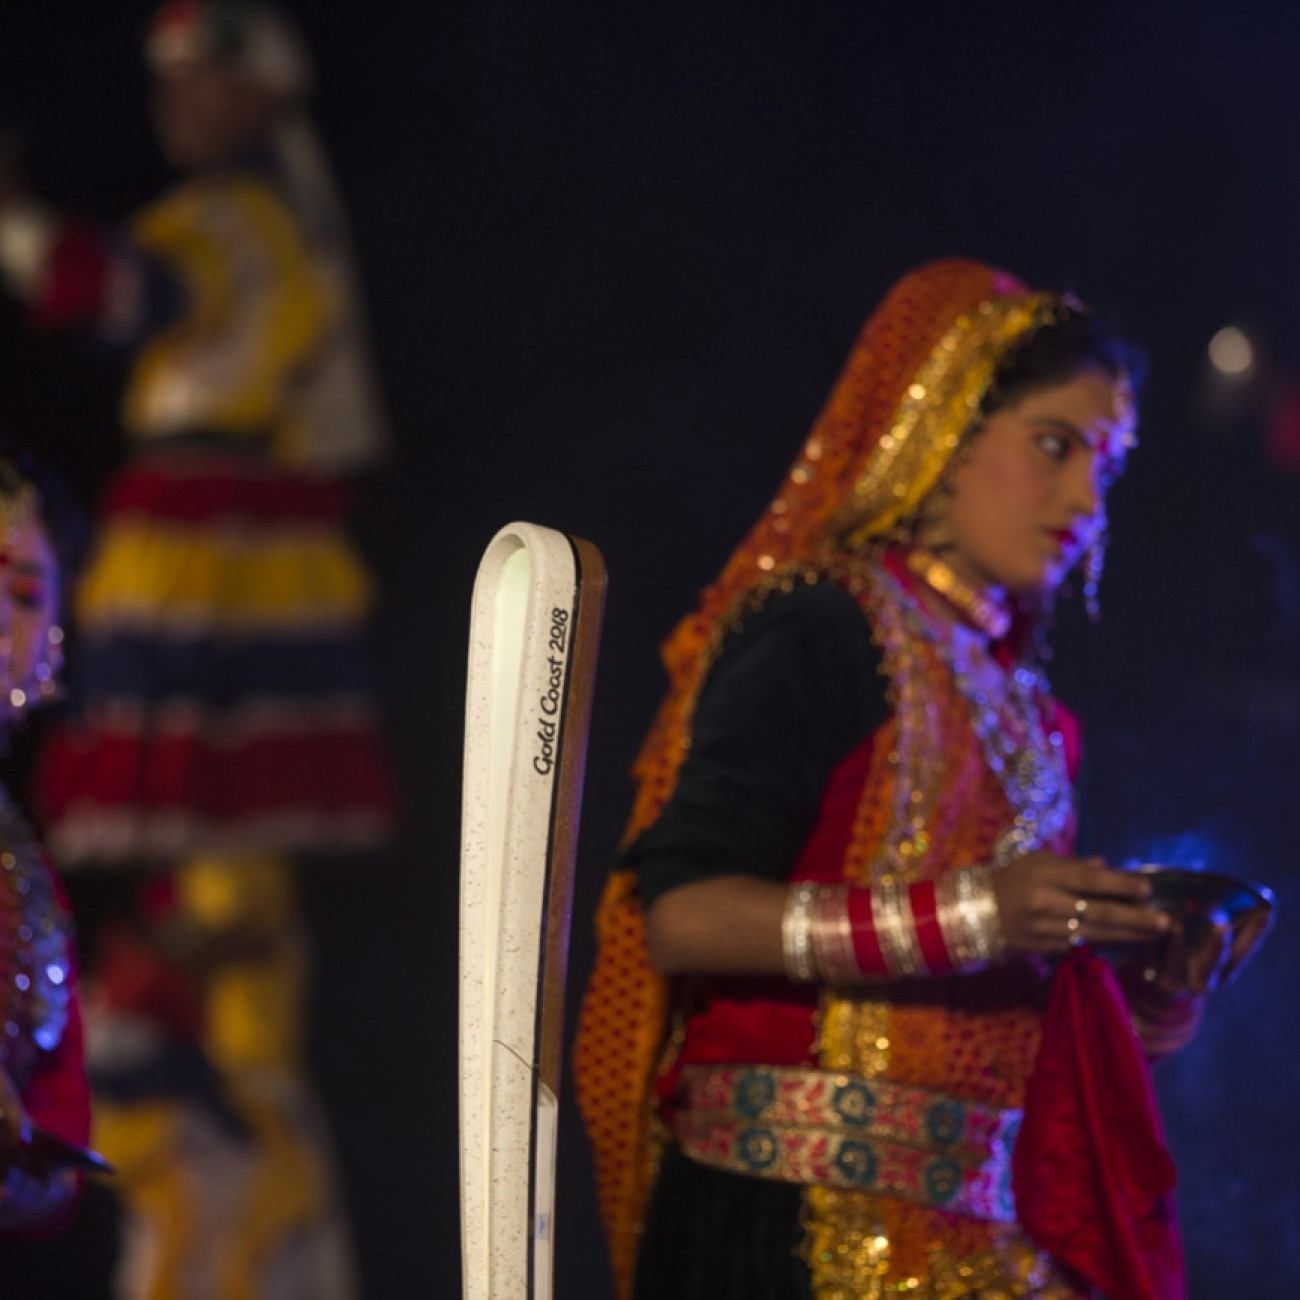 A group of performers and the Queen's Baton at a ceremony in the town of Nainital